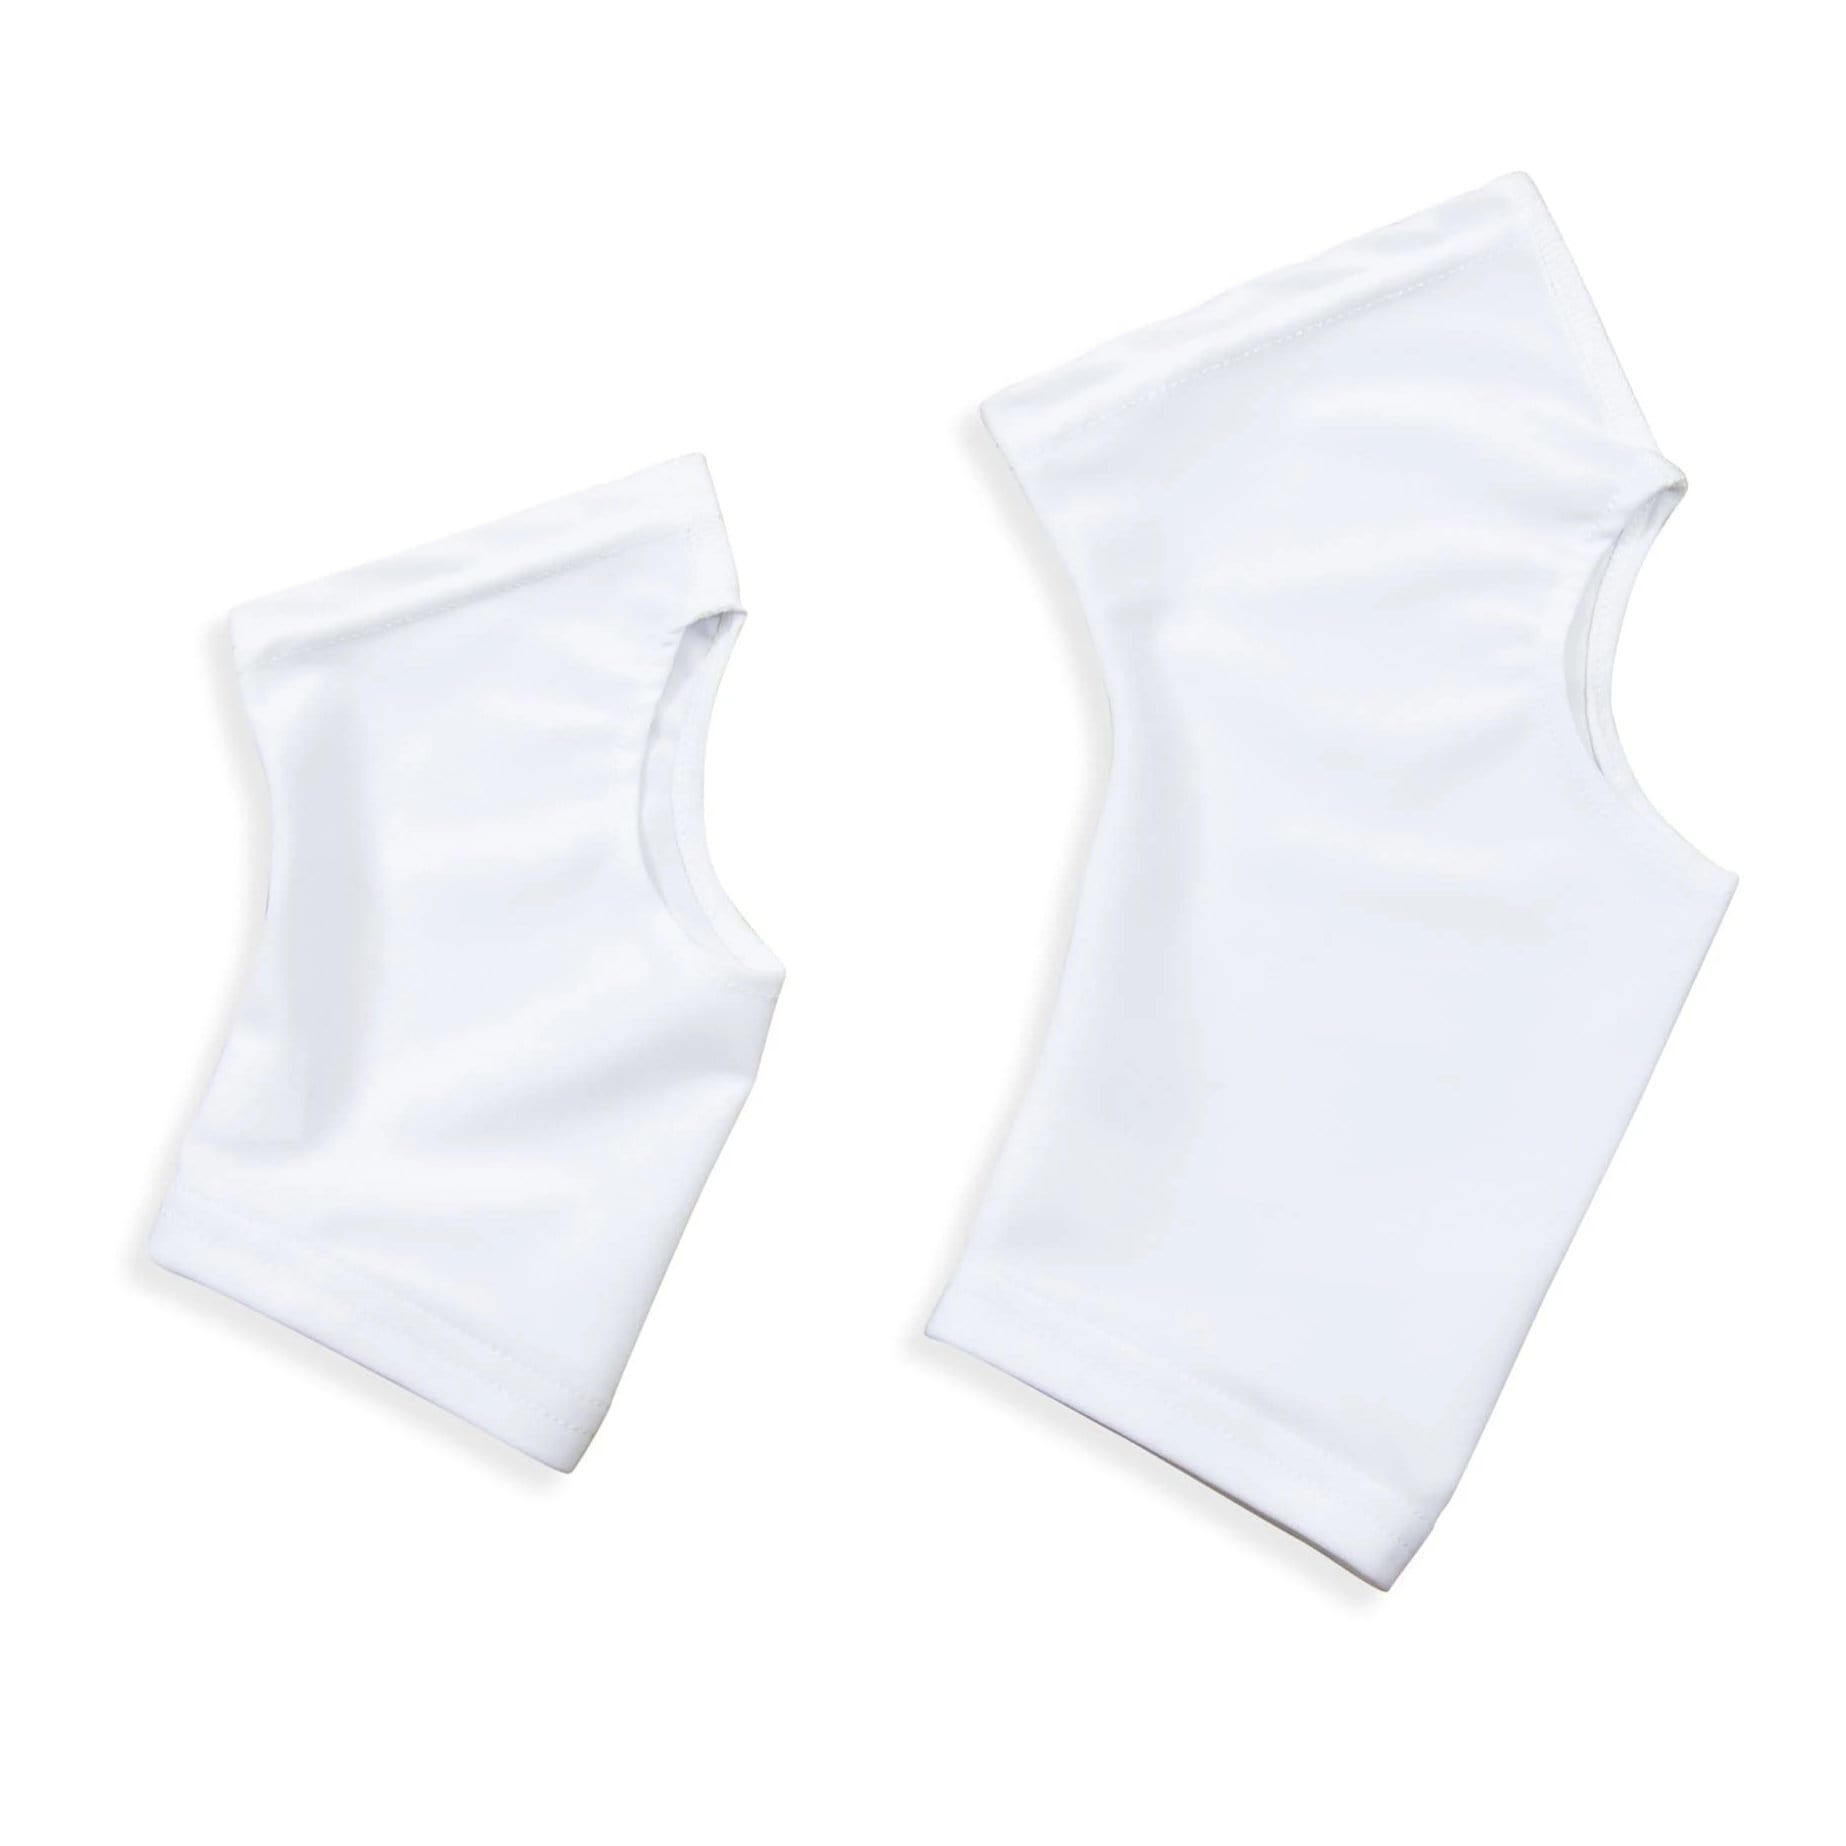 Blank Pair of Spats (Cleat Covers) for Sublimation